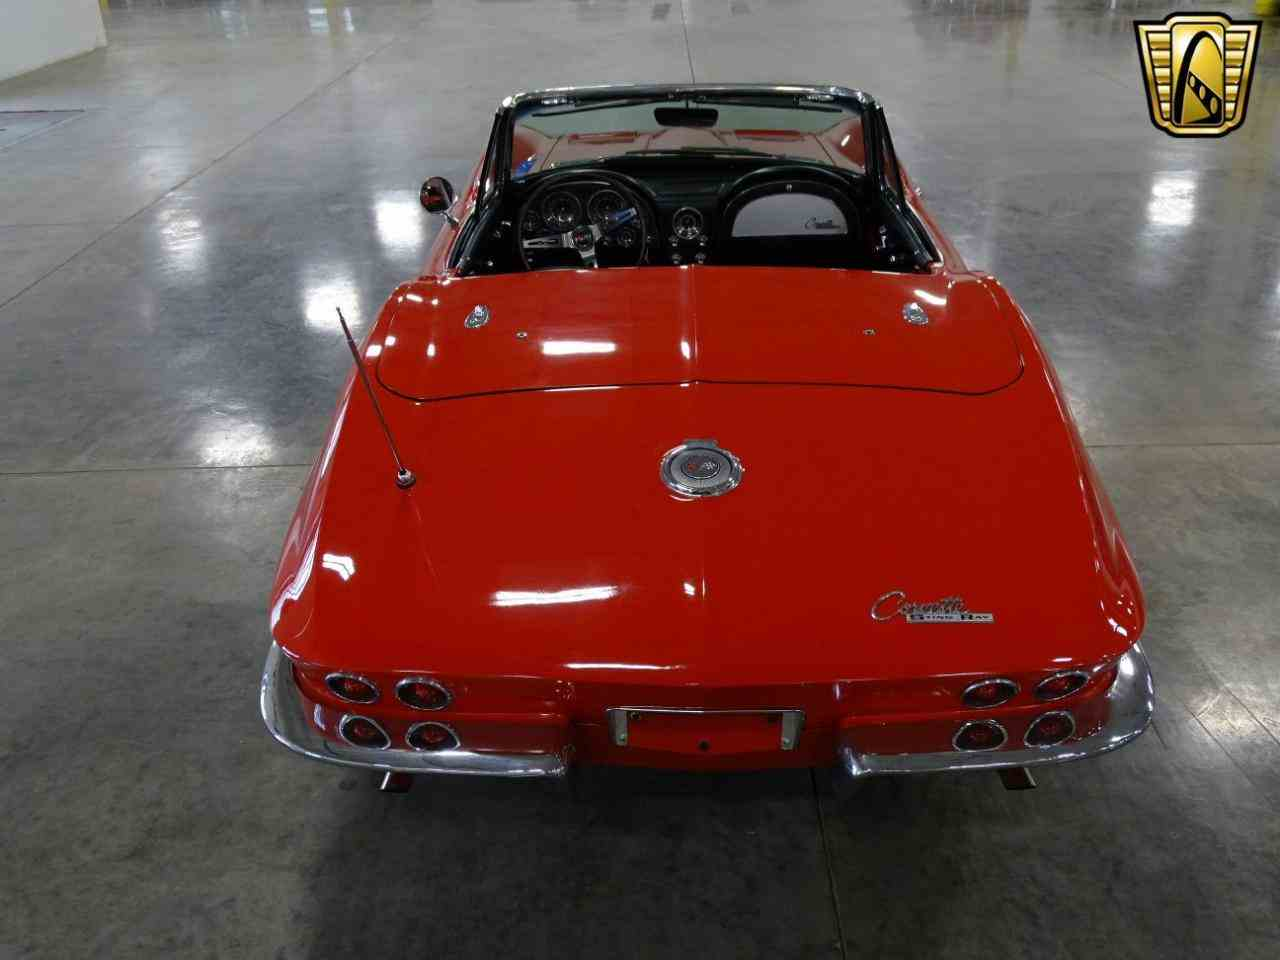 Large Picture of '64 Chevrolet Corvette located in Crete Illinois - $48,995.00 Offered by Gateway Classic Cars - Chicago - KEXN